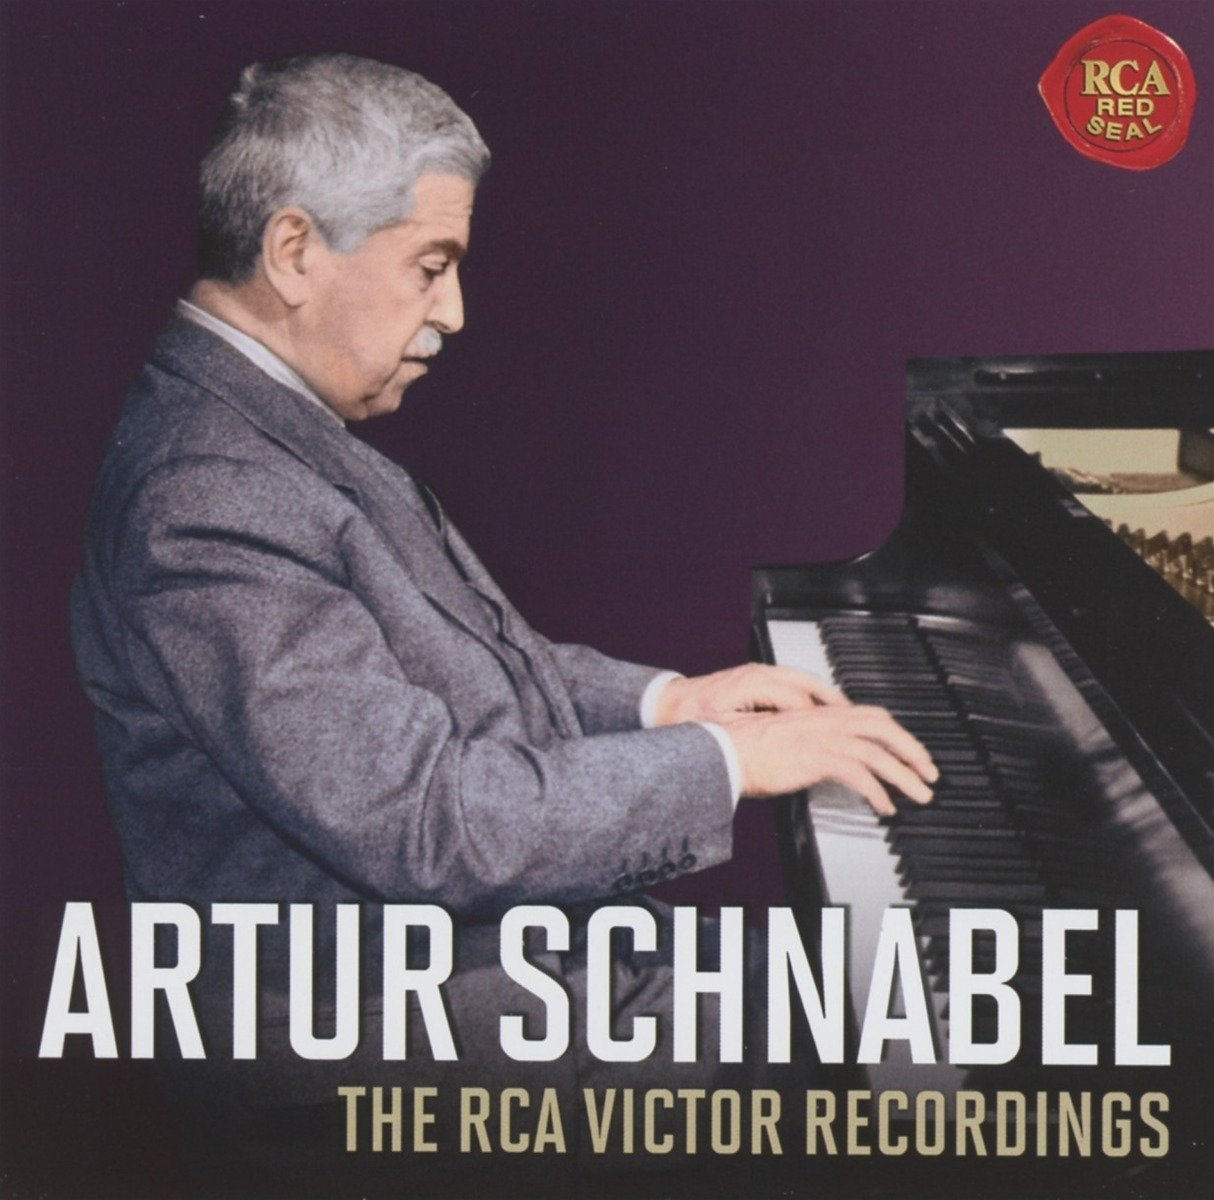 Artur Schnabel: The RCA Victor Recordings.